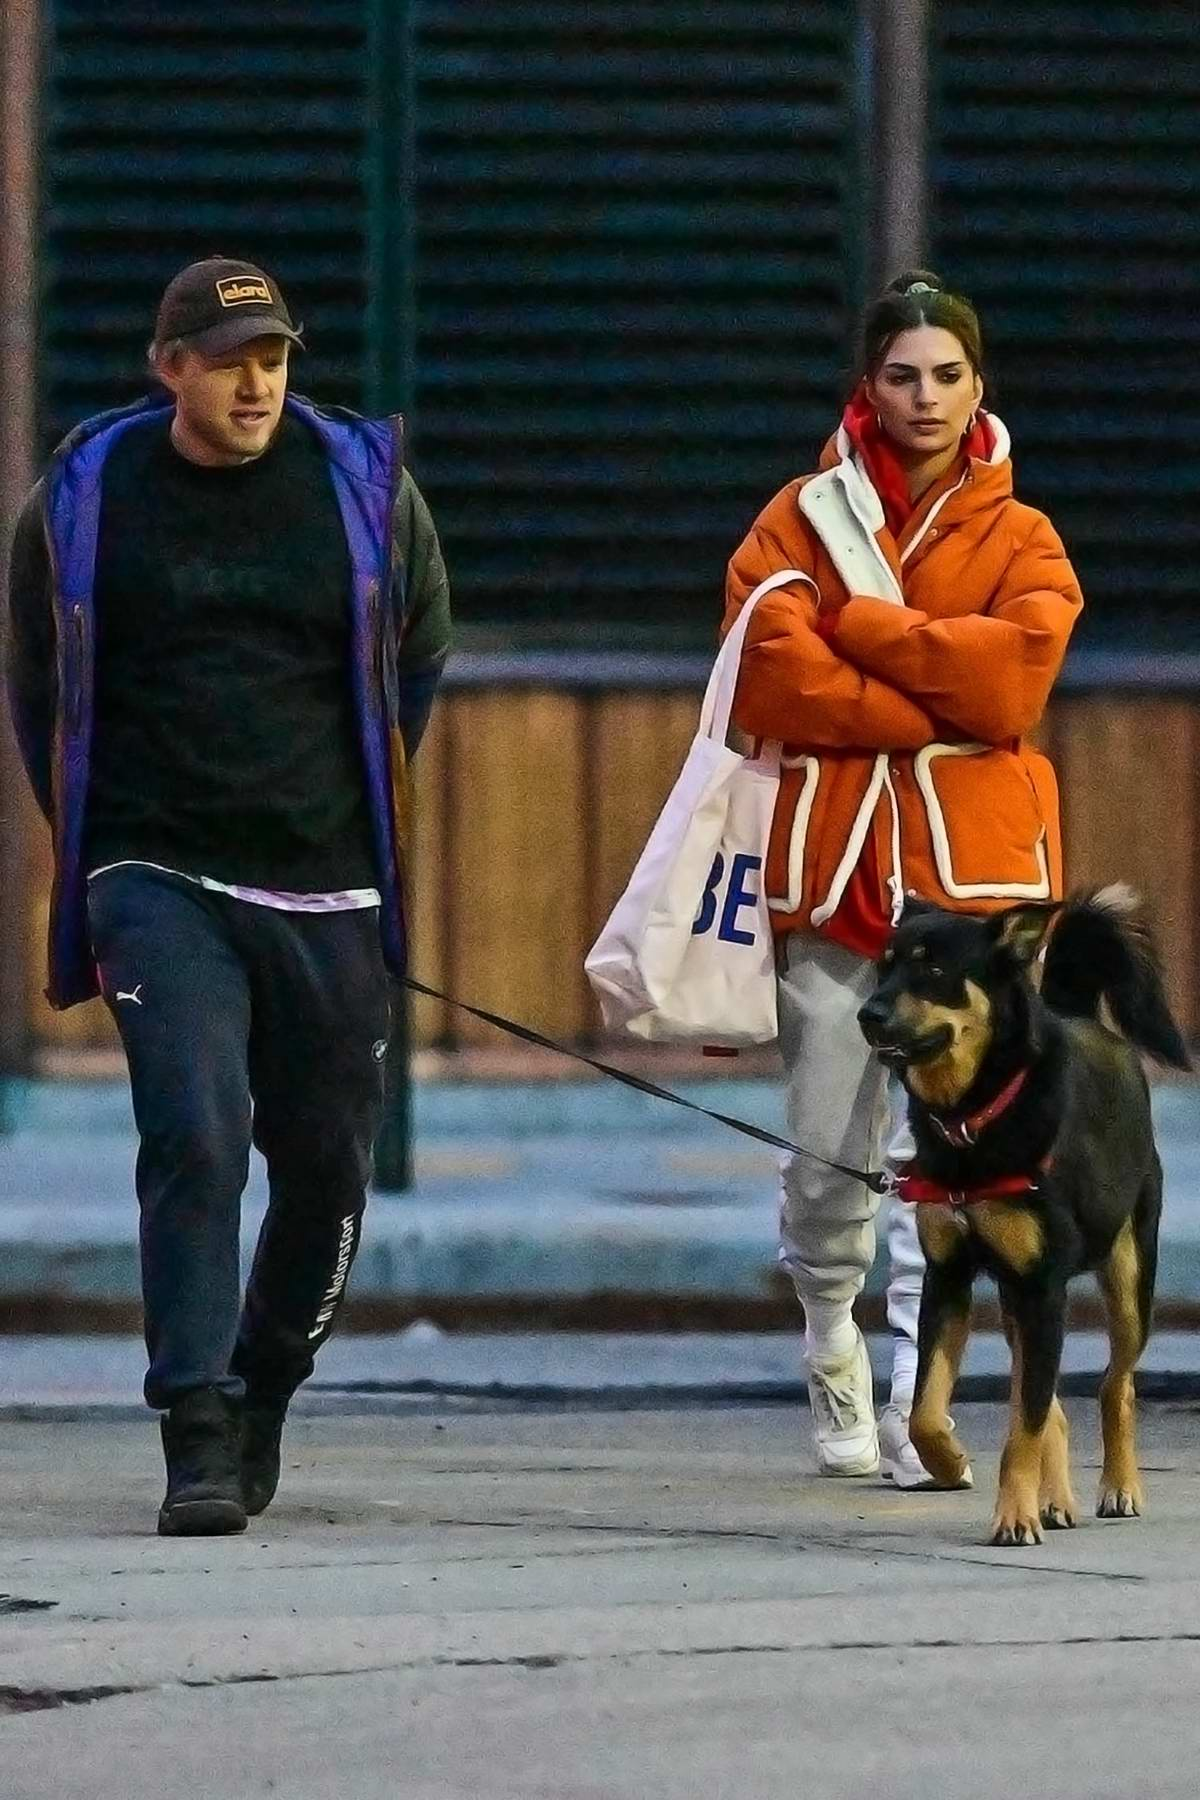 Emily Ratajkowski and Sebastian Bear-McClard step out to walk their dog on empty streets of New York City